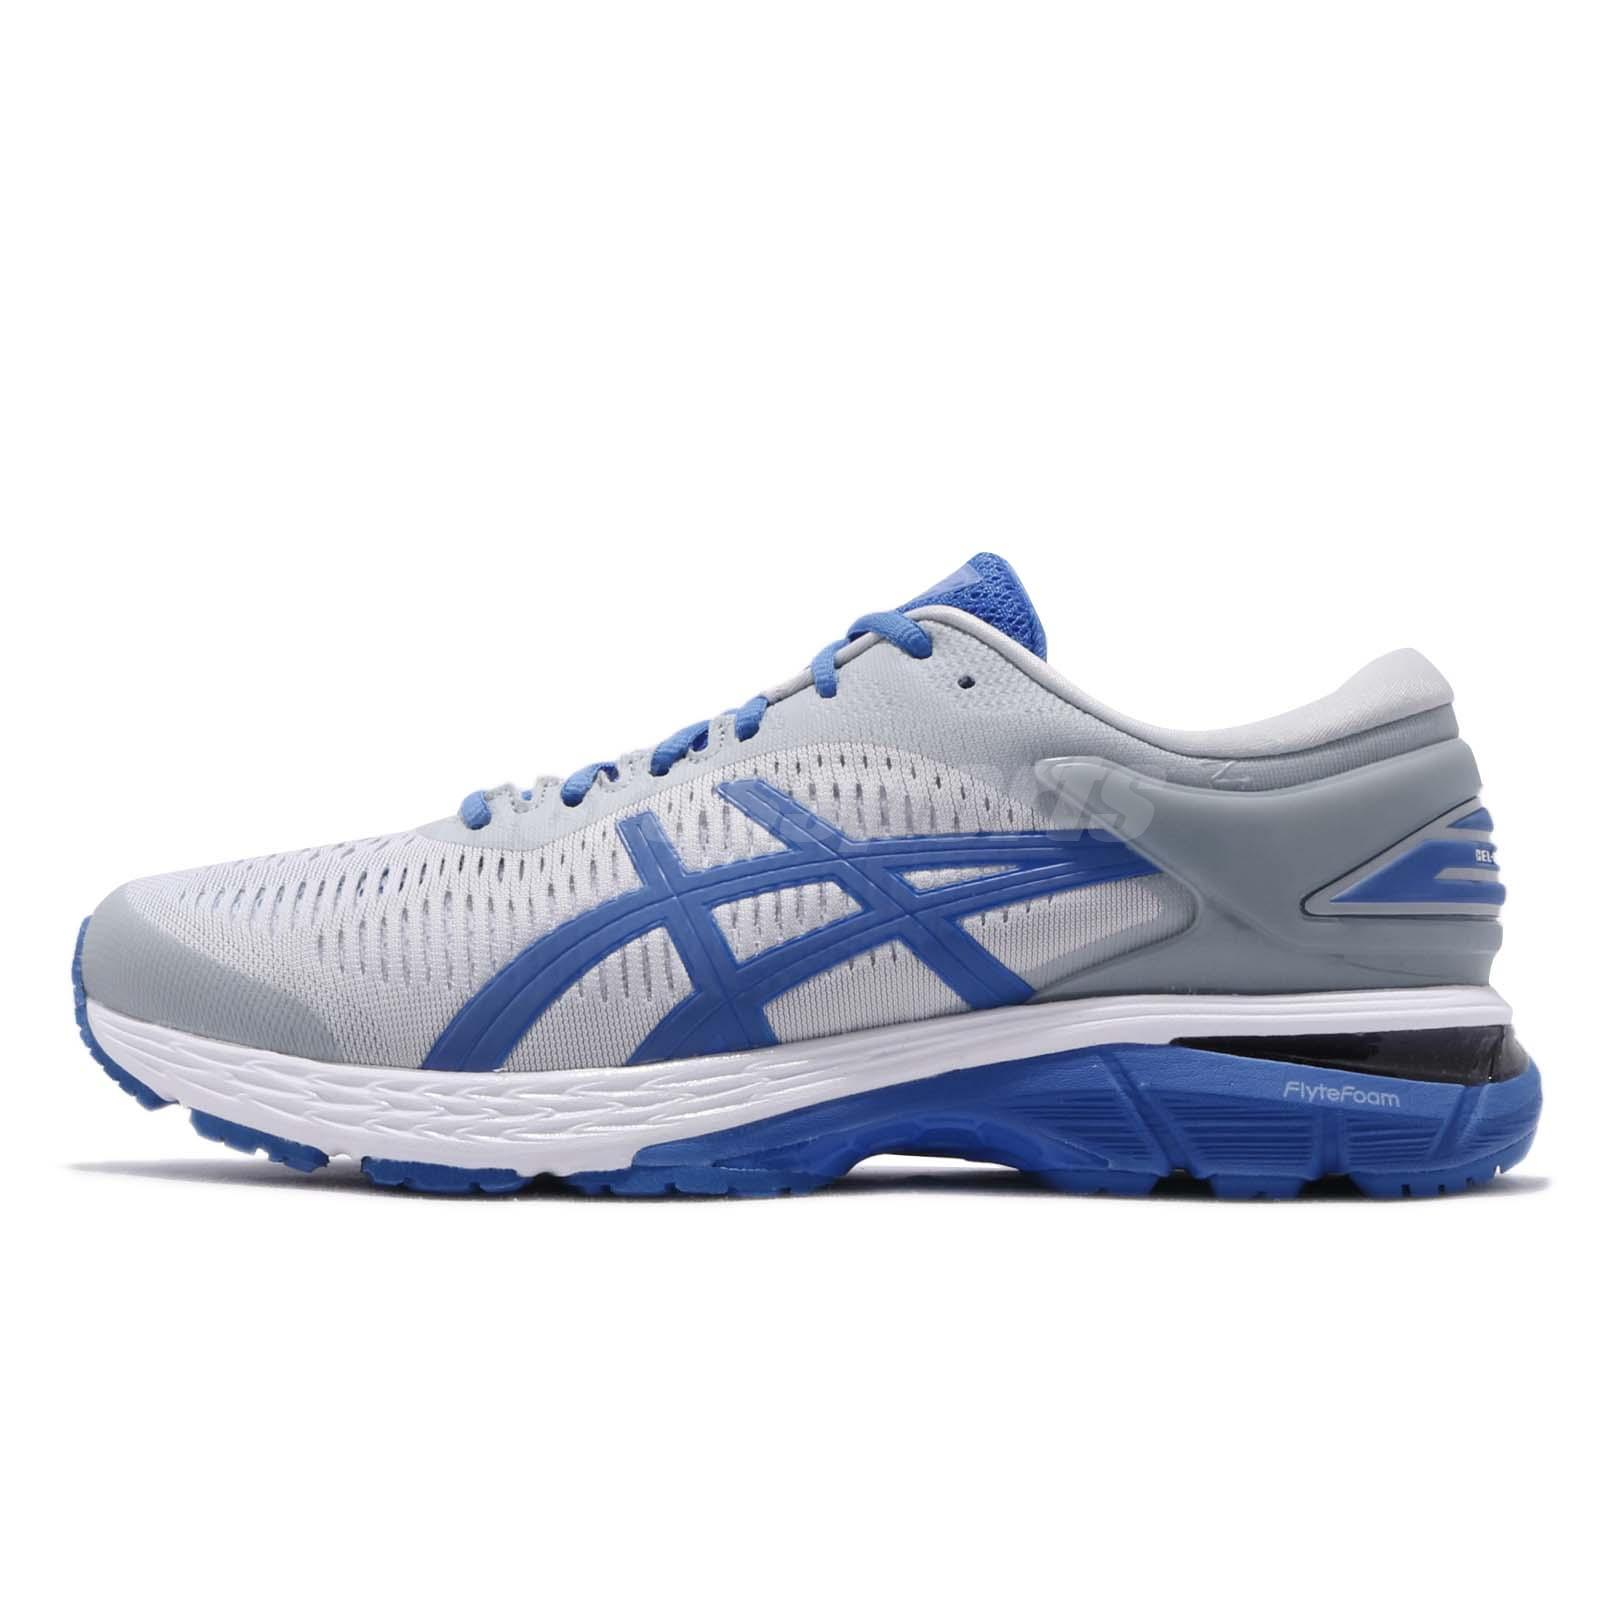 8e577fdb64 Asics Gel Kayano 25 Lite Show Grey Blue Men Running Shoes Sneakers  1011A204-020